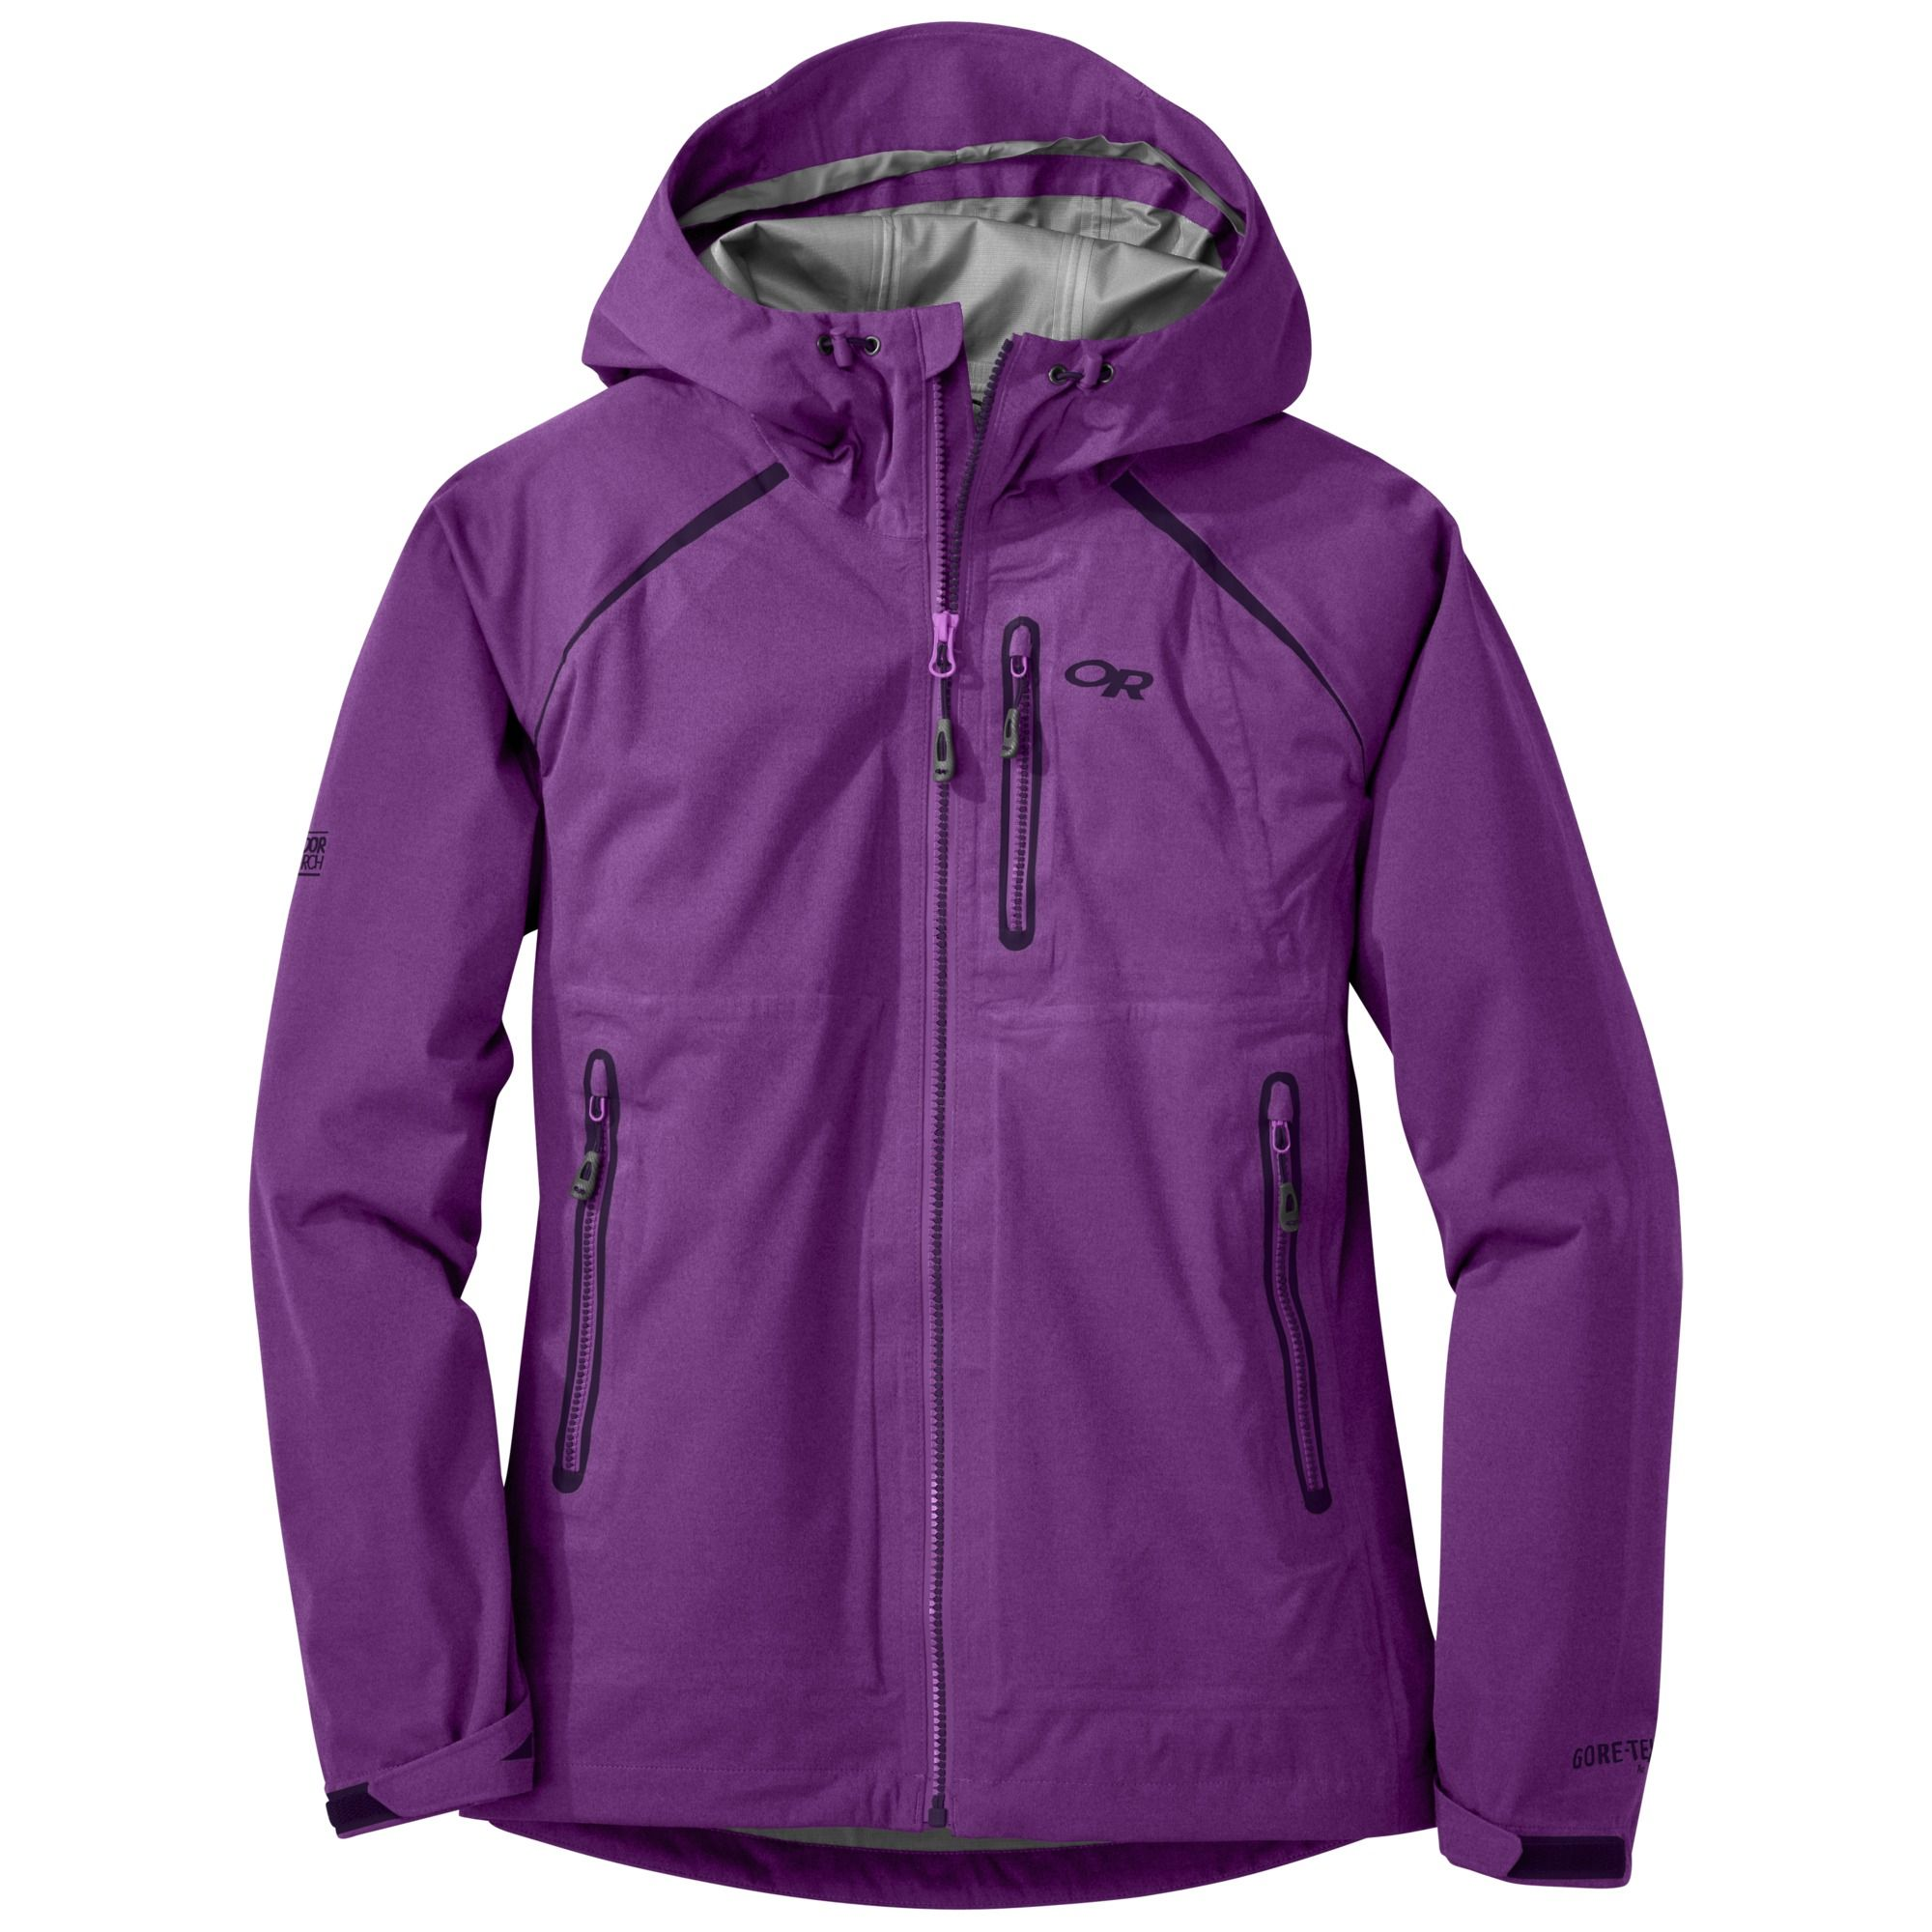 Womenus clairvoyant jacket wisteria outdoor research goretex or